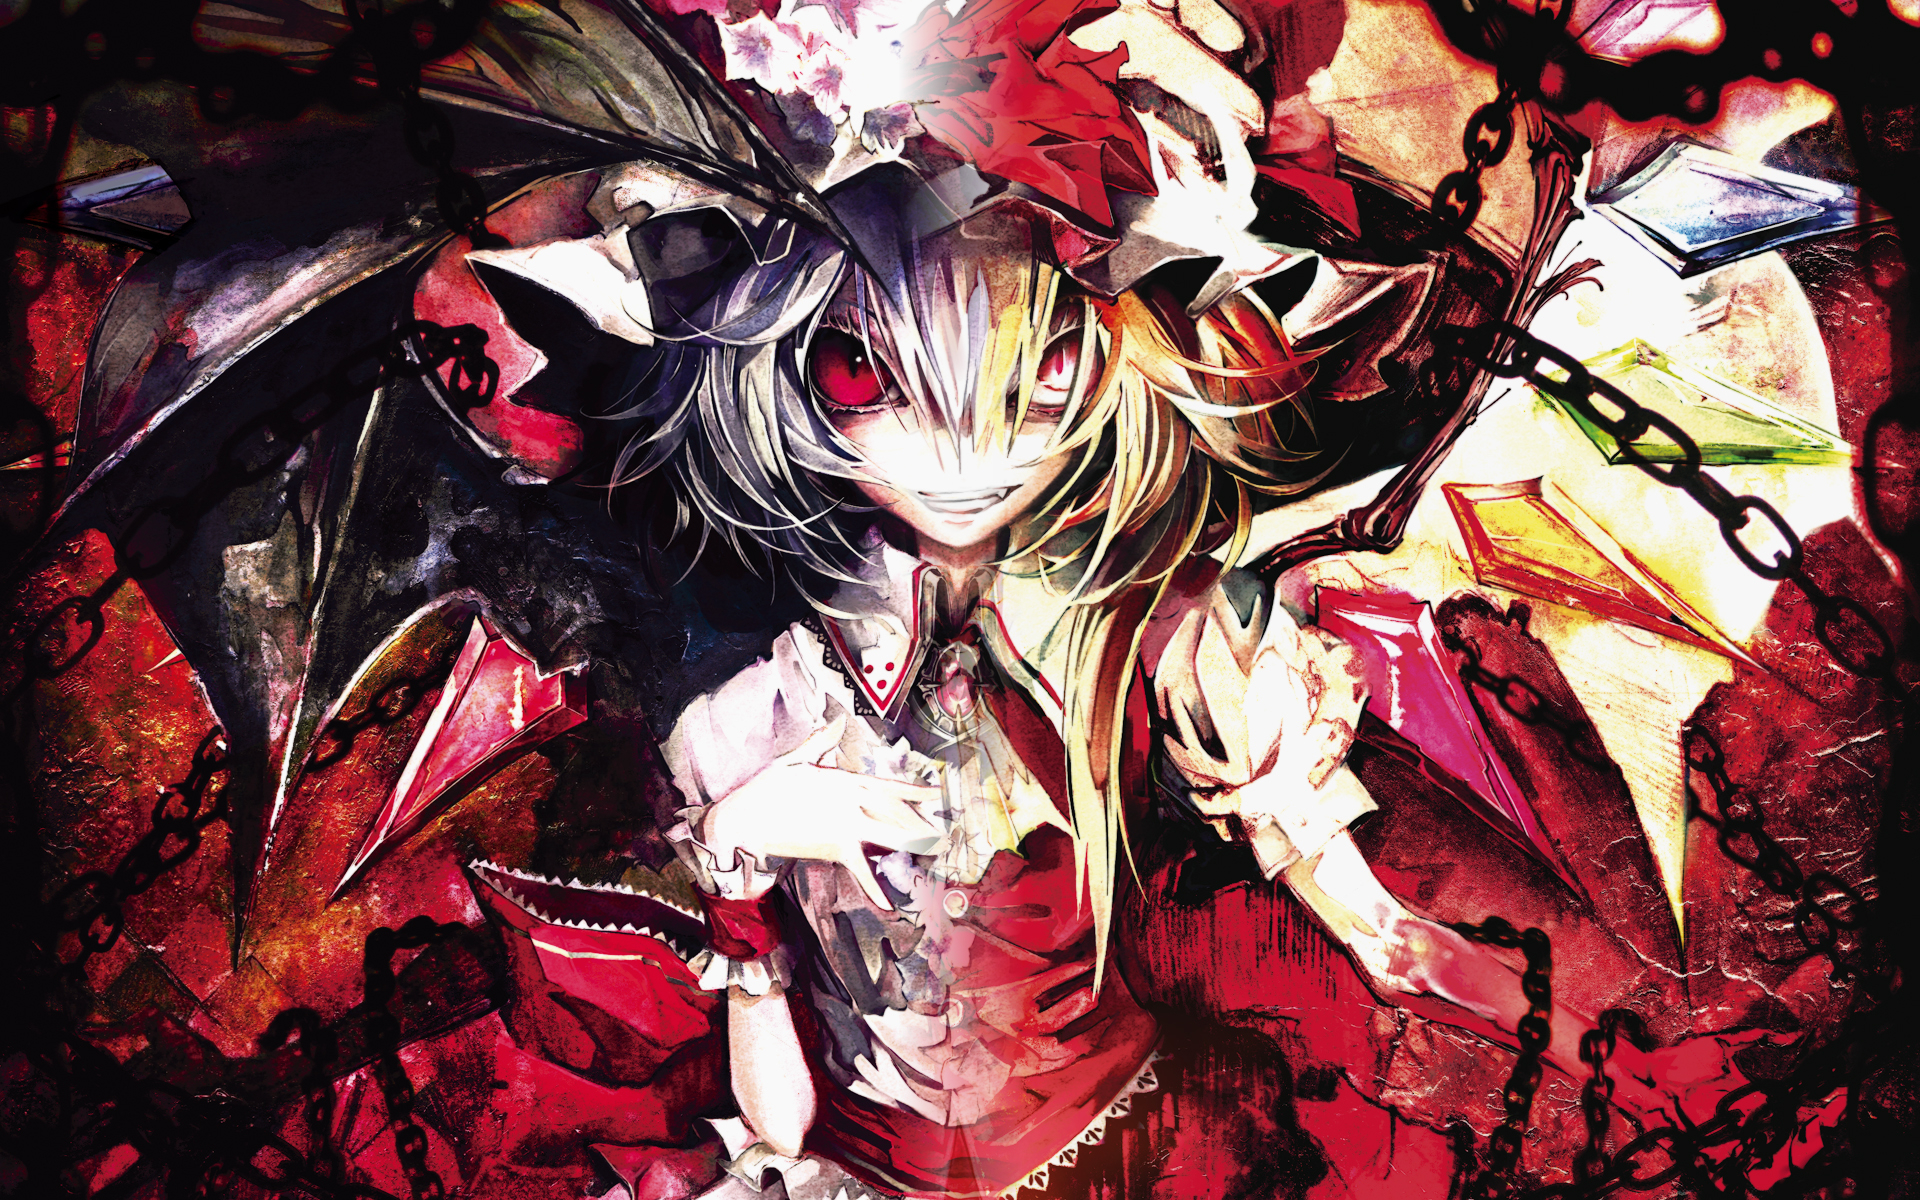 Red Anime Wallpaper Banpai Akira Flandre Scarlet Red Eyes Remilia Scarlet